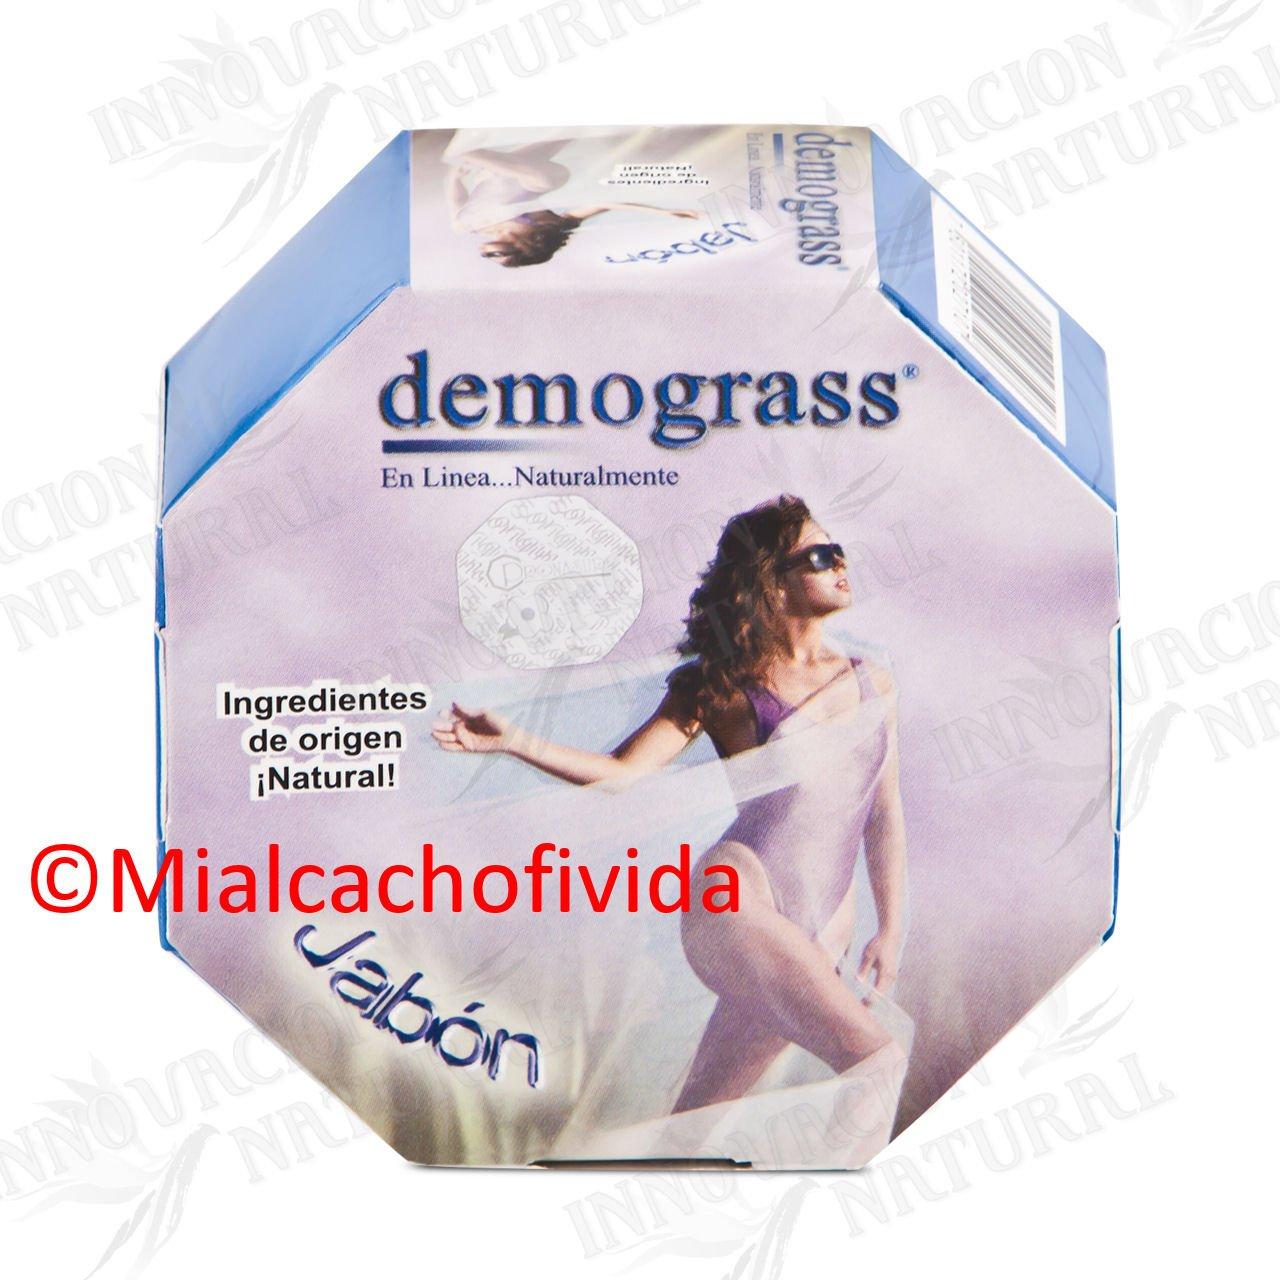 Amazon.com: Jabon Exfoliante Demograss - Demograss Line Soap: Health & Personal Care